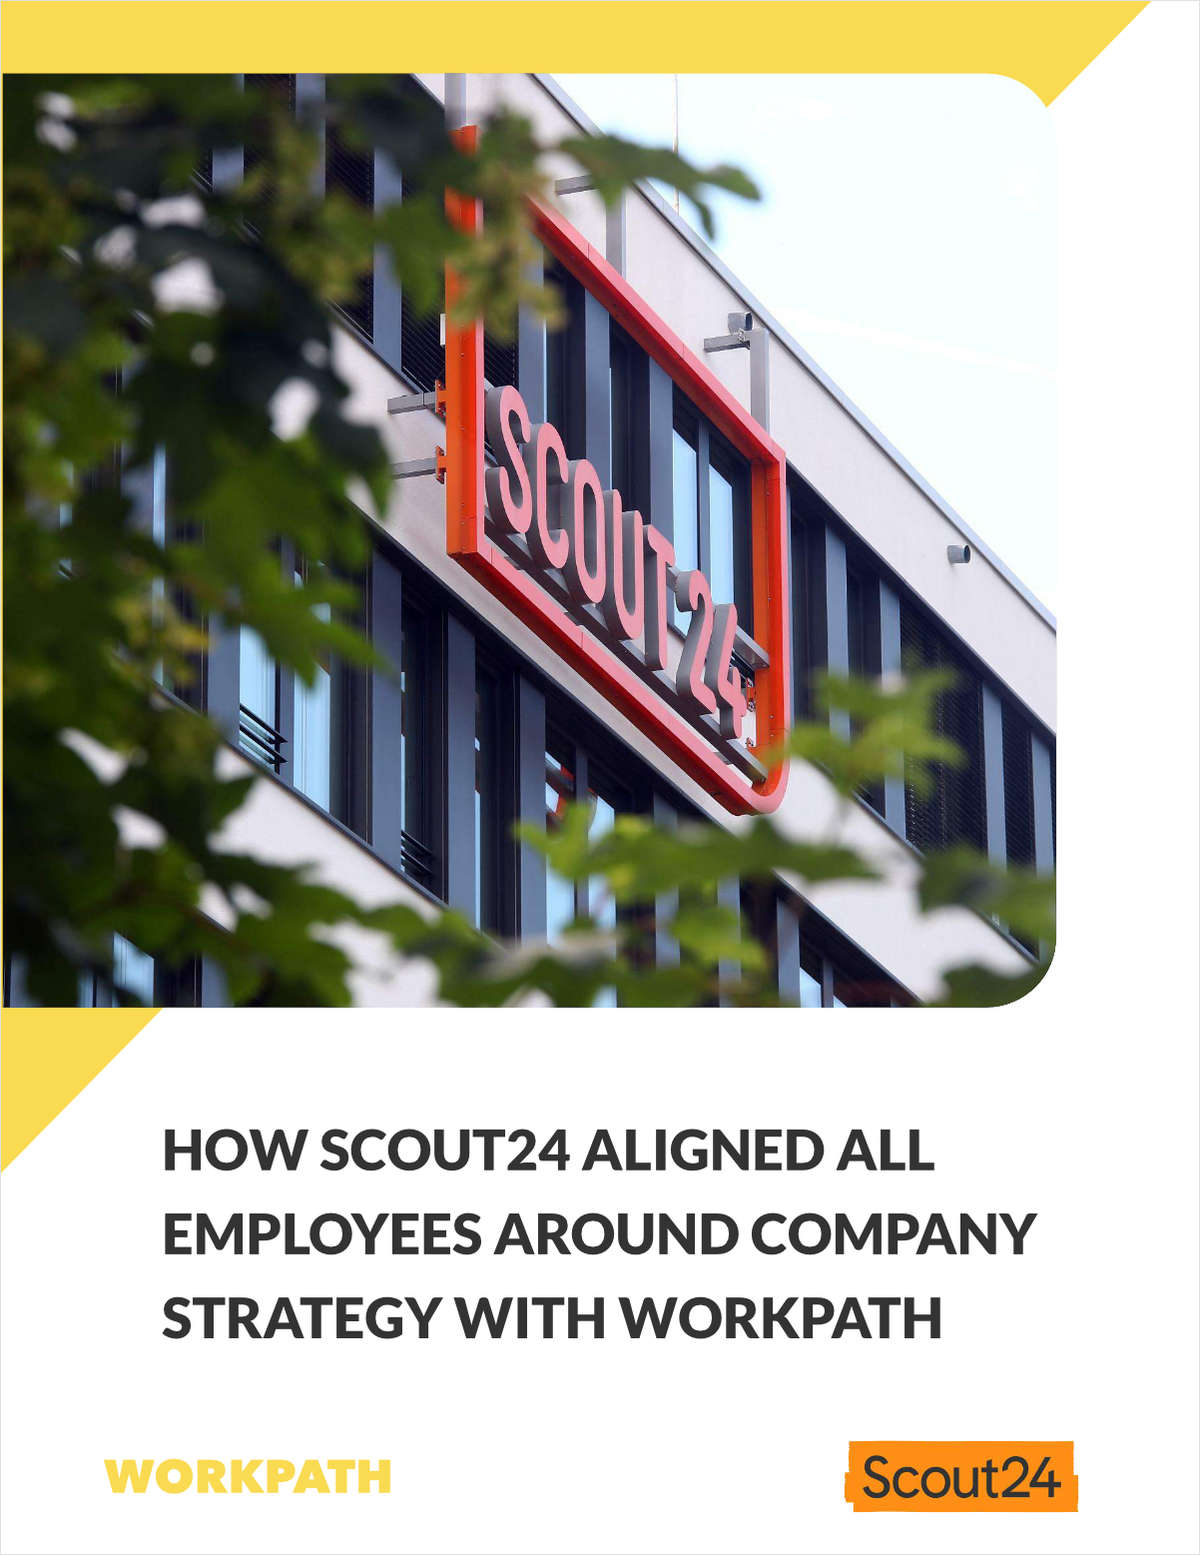 How Scout24 aligned all employees around company strategy with Workpath